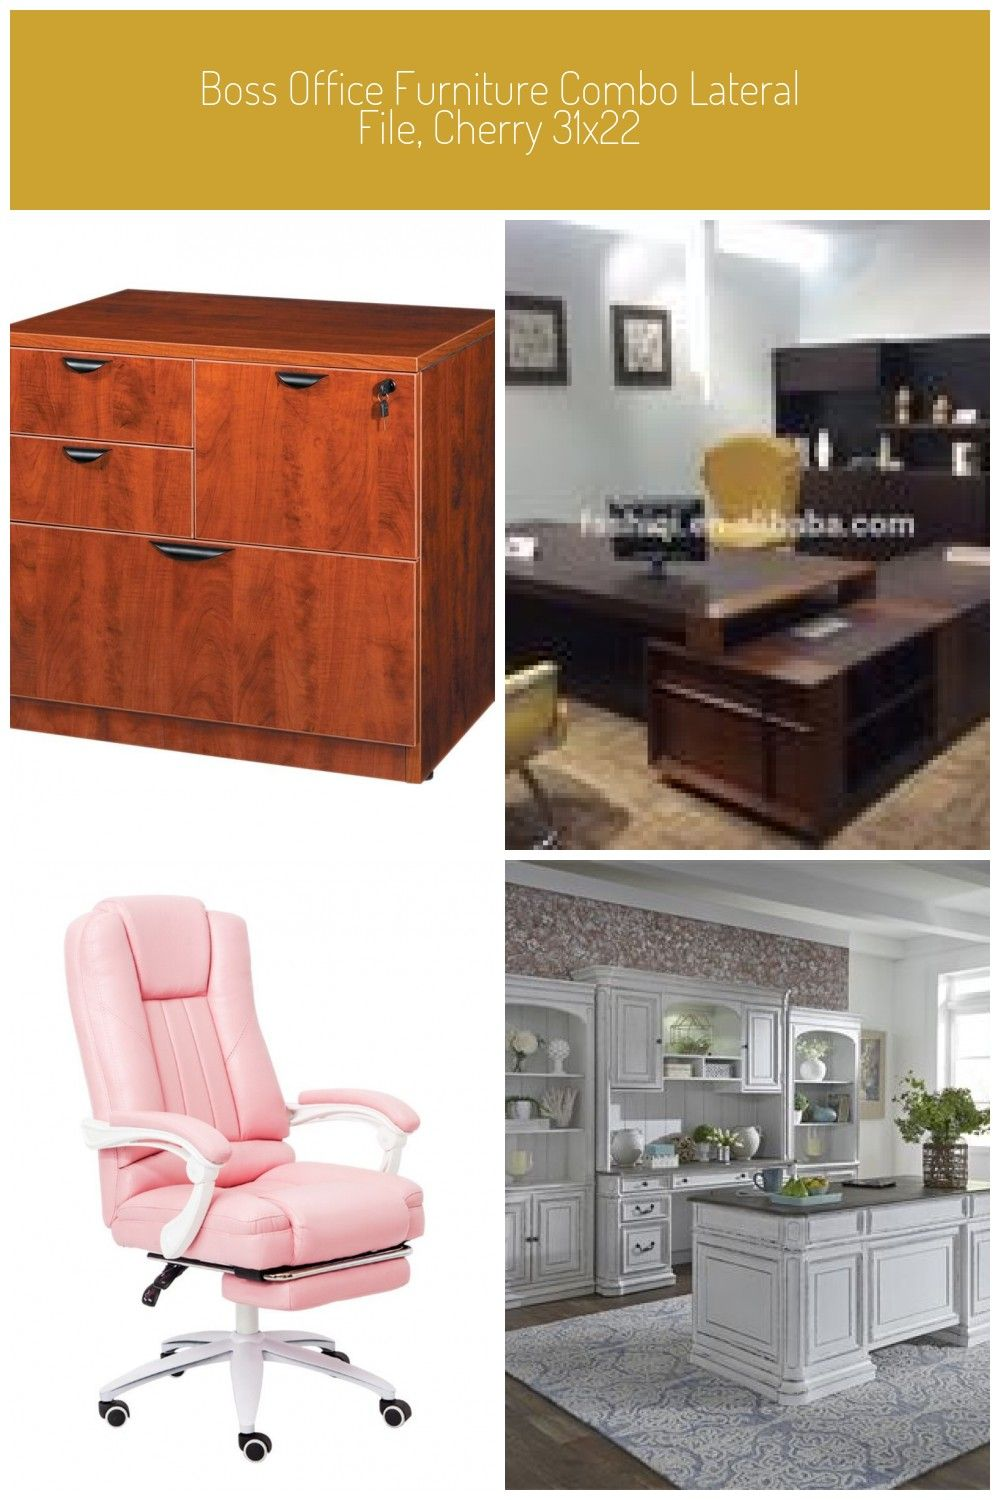 Office Furniture Combo Lateral File